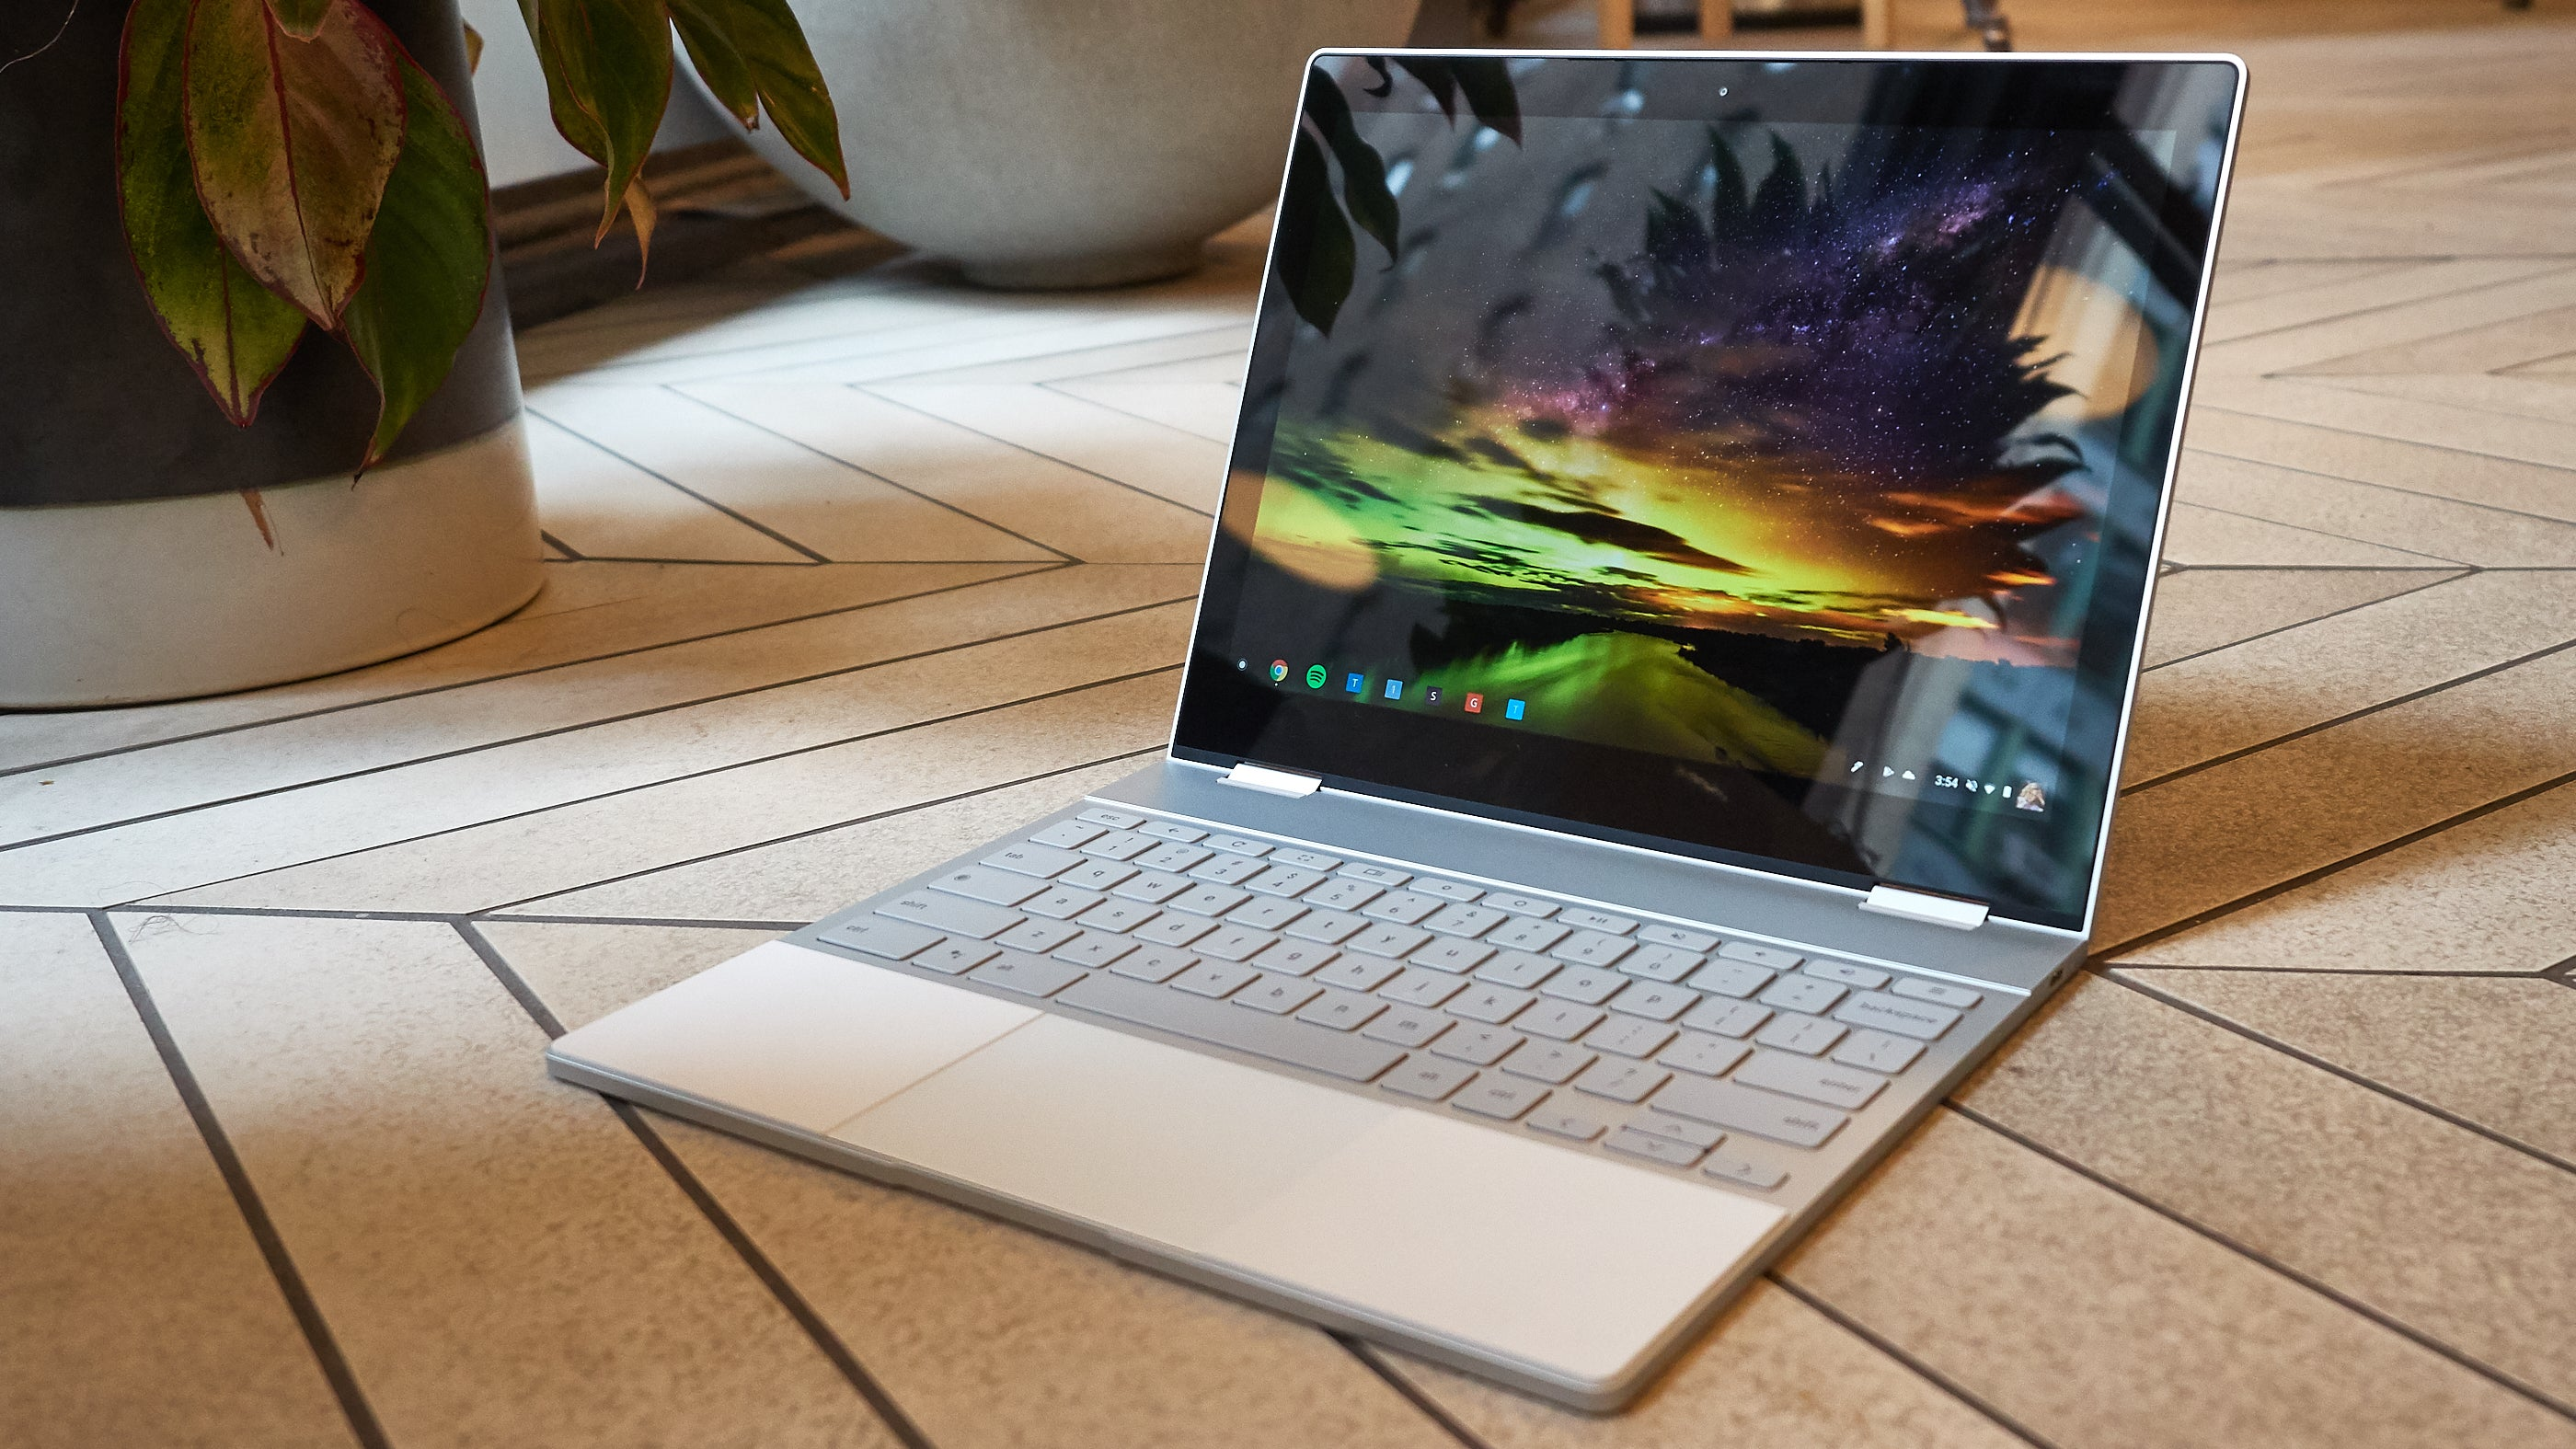 Here's A Leak Of What Could Be Google's New 'Pixelbook' 2-In-1